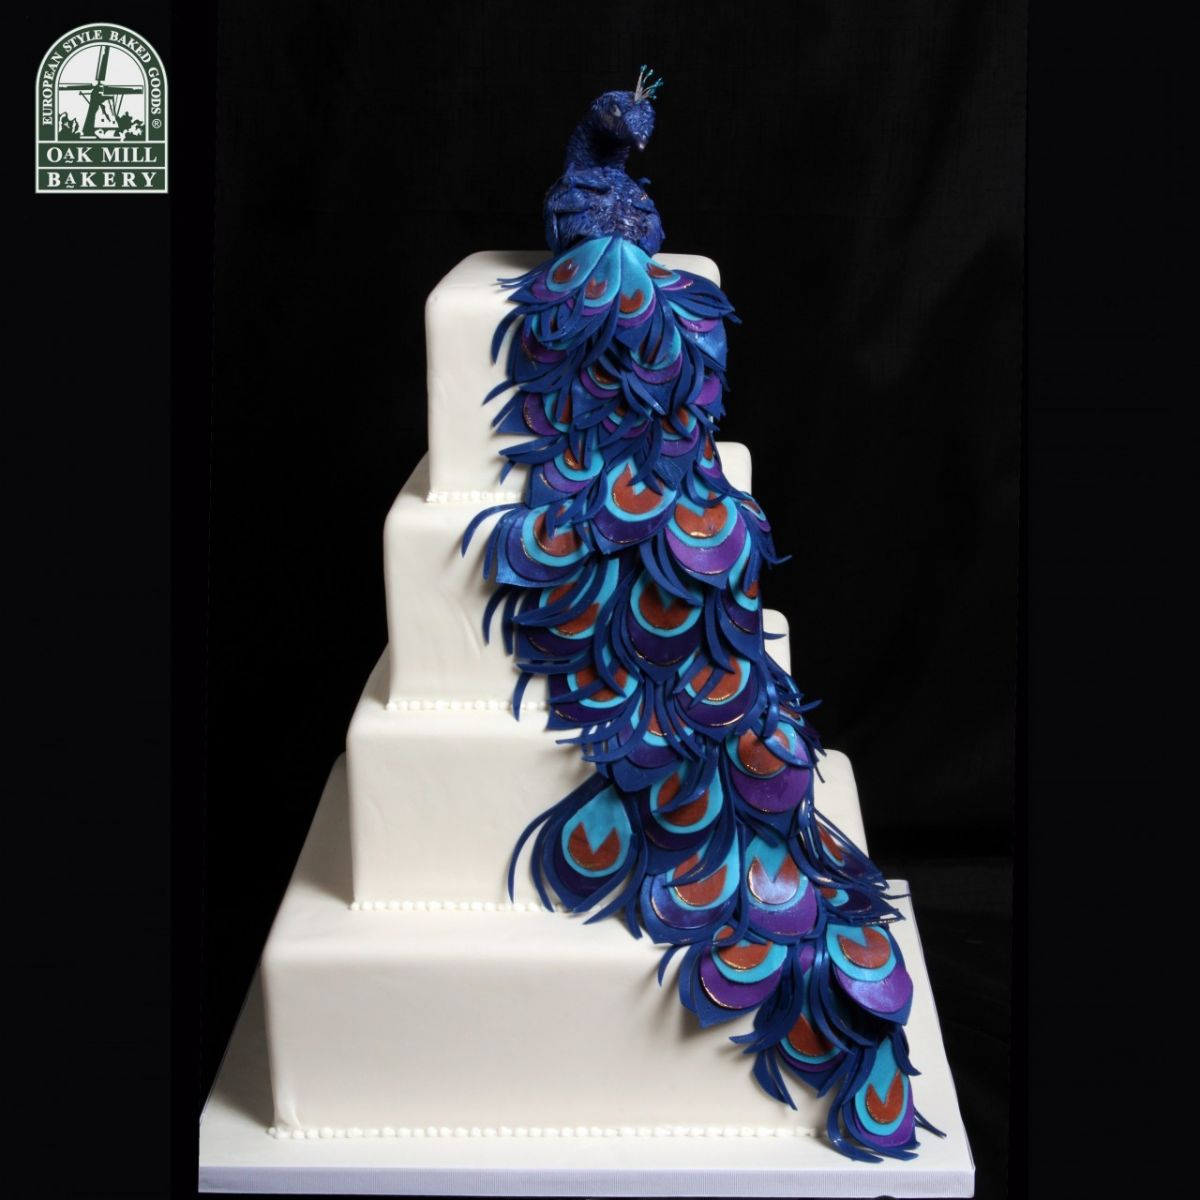 18 Wedding Cake Designs to Steal   AllFreeDIYWeddings com This cascading peacock cake is absolutely stunning  The simplicity of the  left side of this wedding cake design perfectly foils the intricacy of the  right